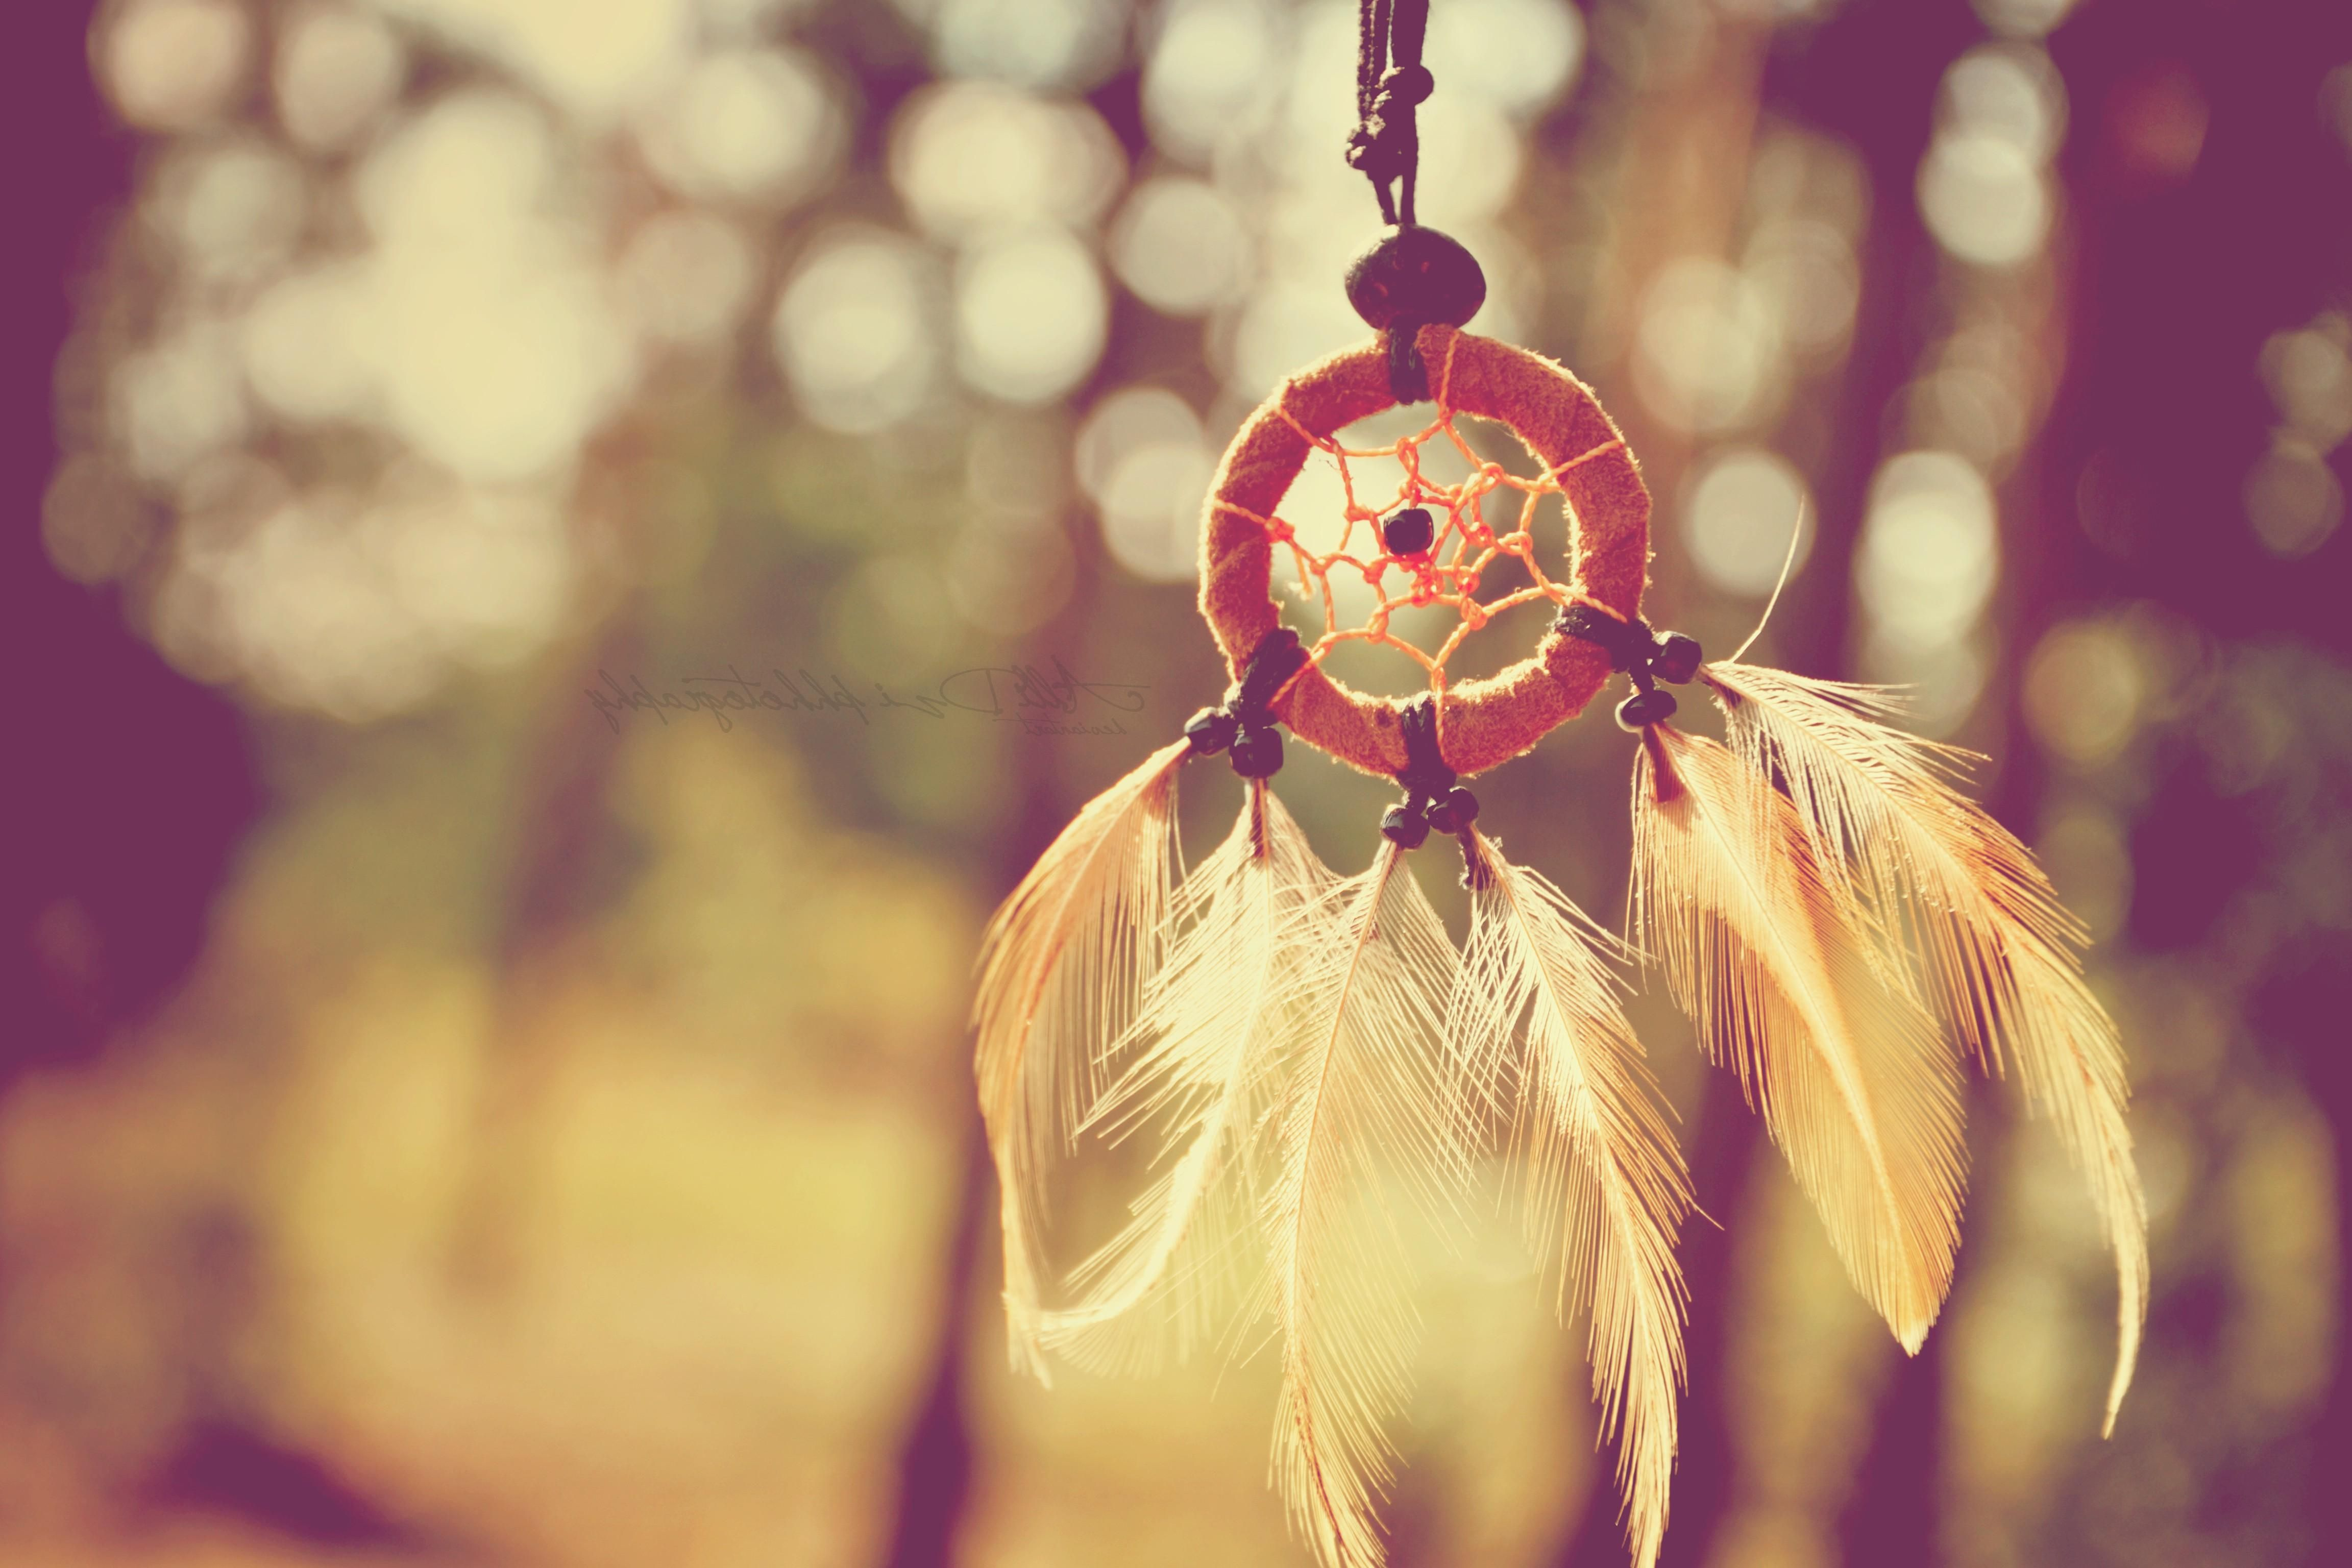 dreamcatcher wallpaper - Google Search | ThreadSence Mood ...